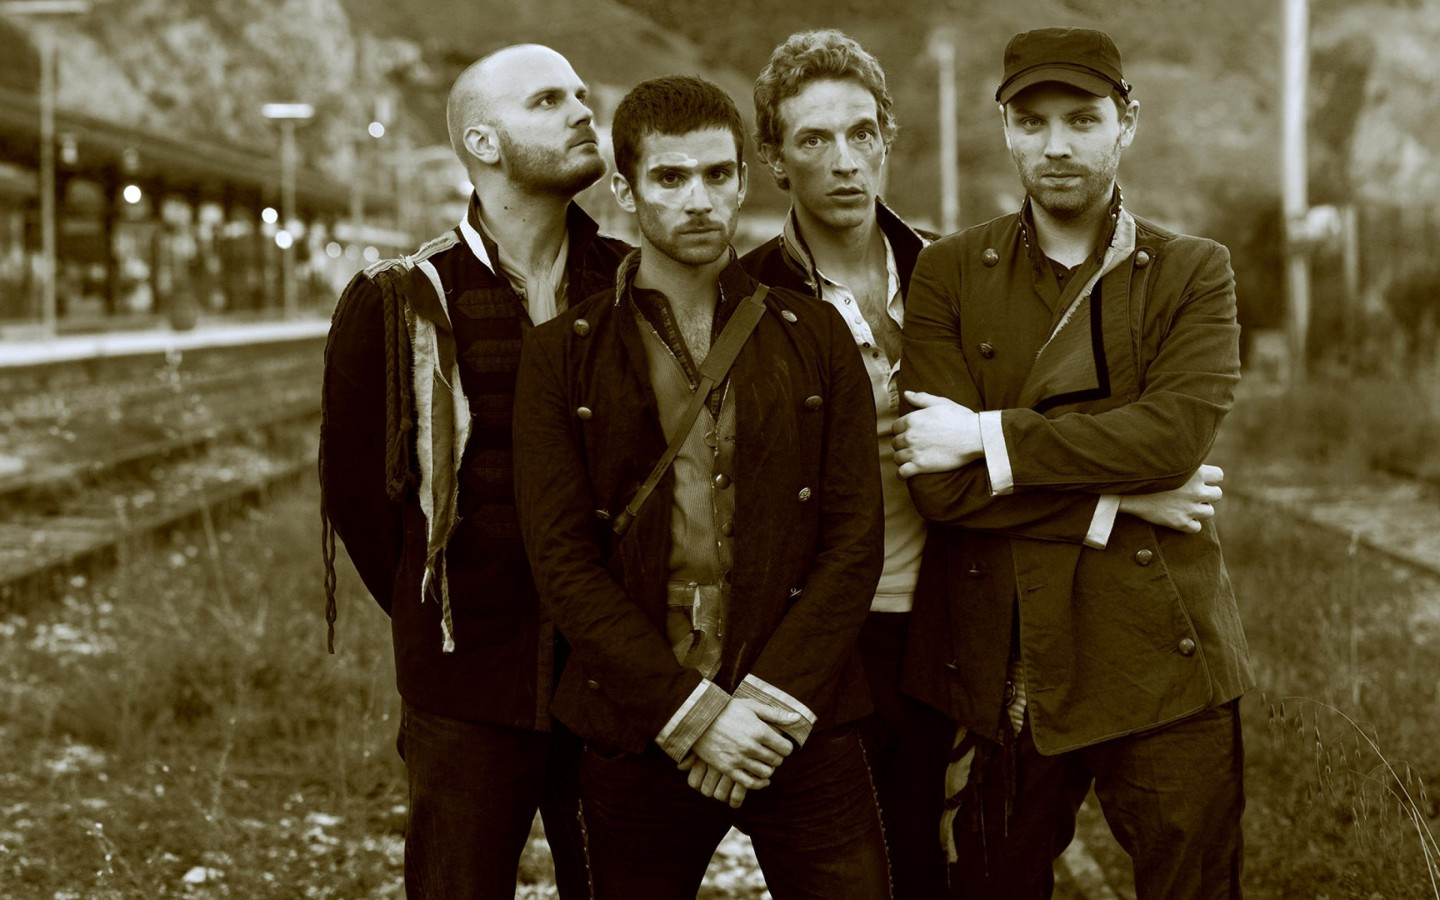 Coldplay Band Sepia Wallpaper for Desktop 1440x900